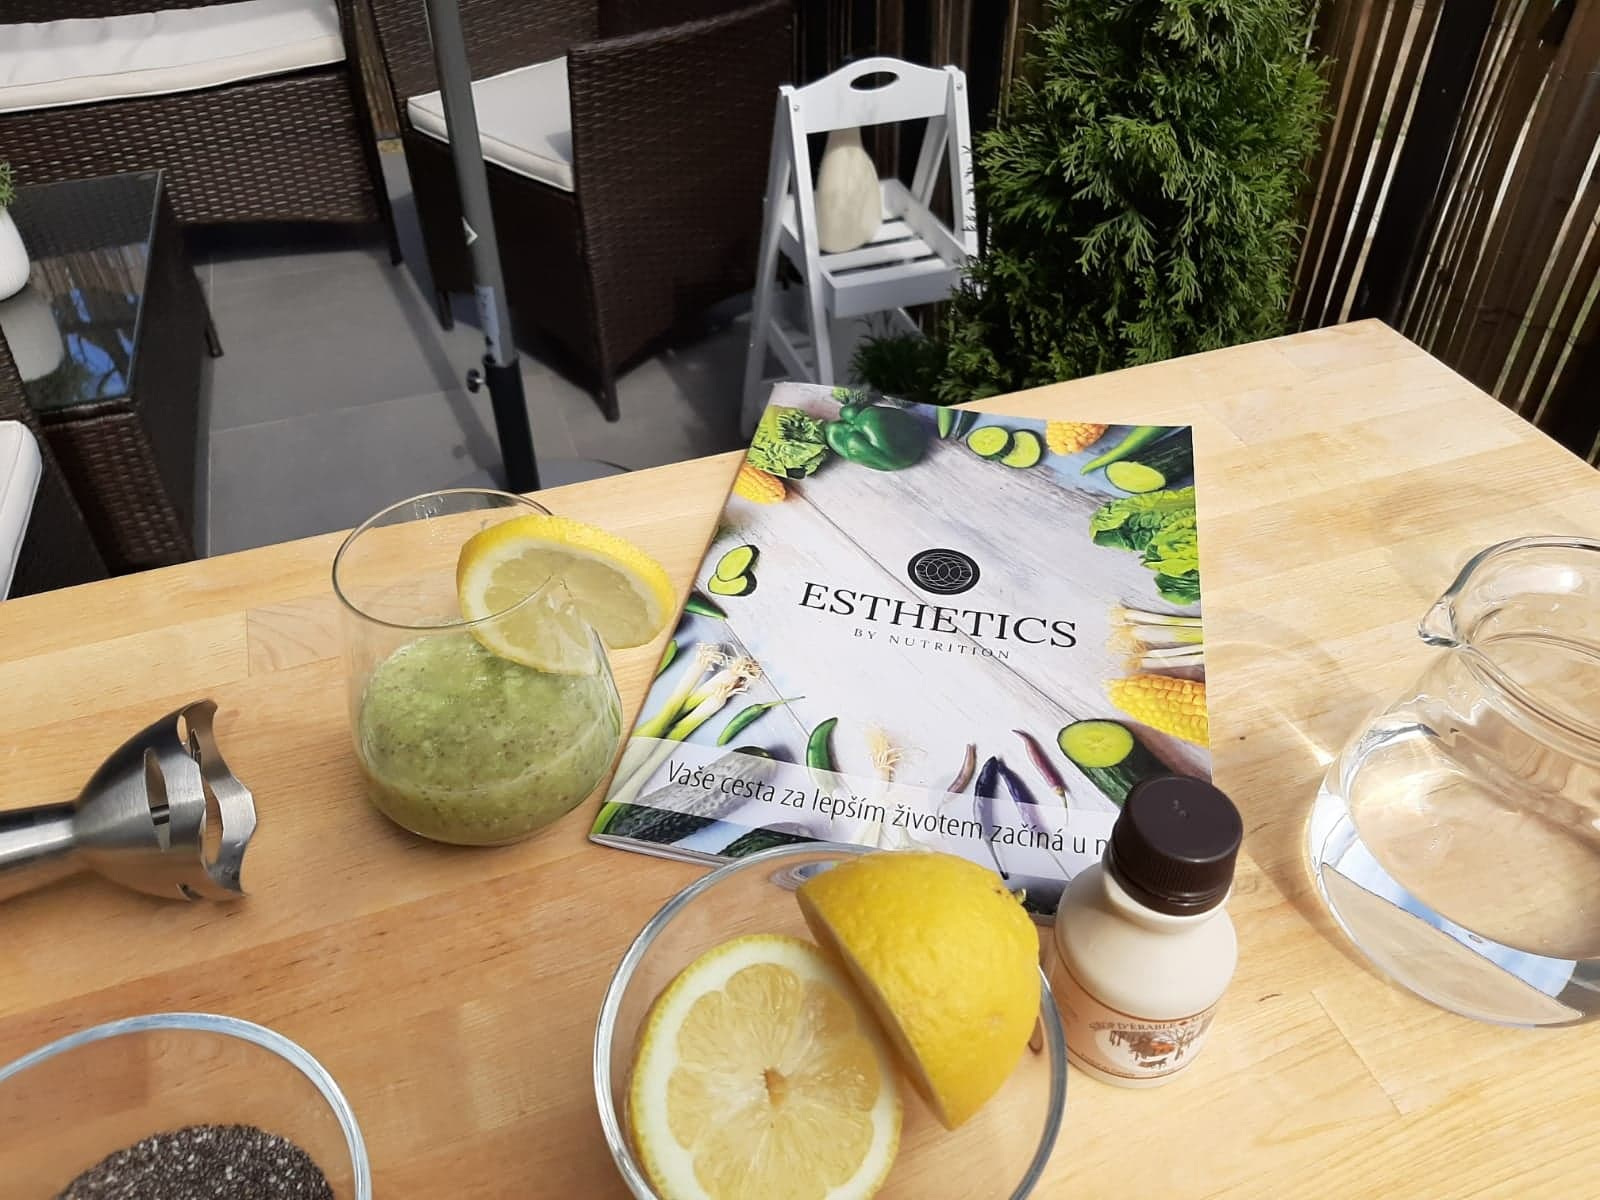 Esthetics by Nutrition